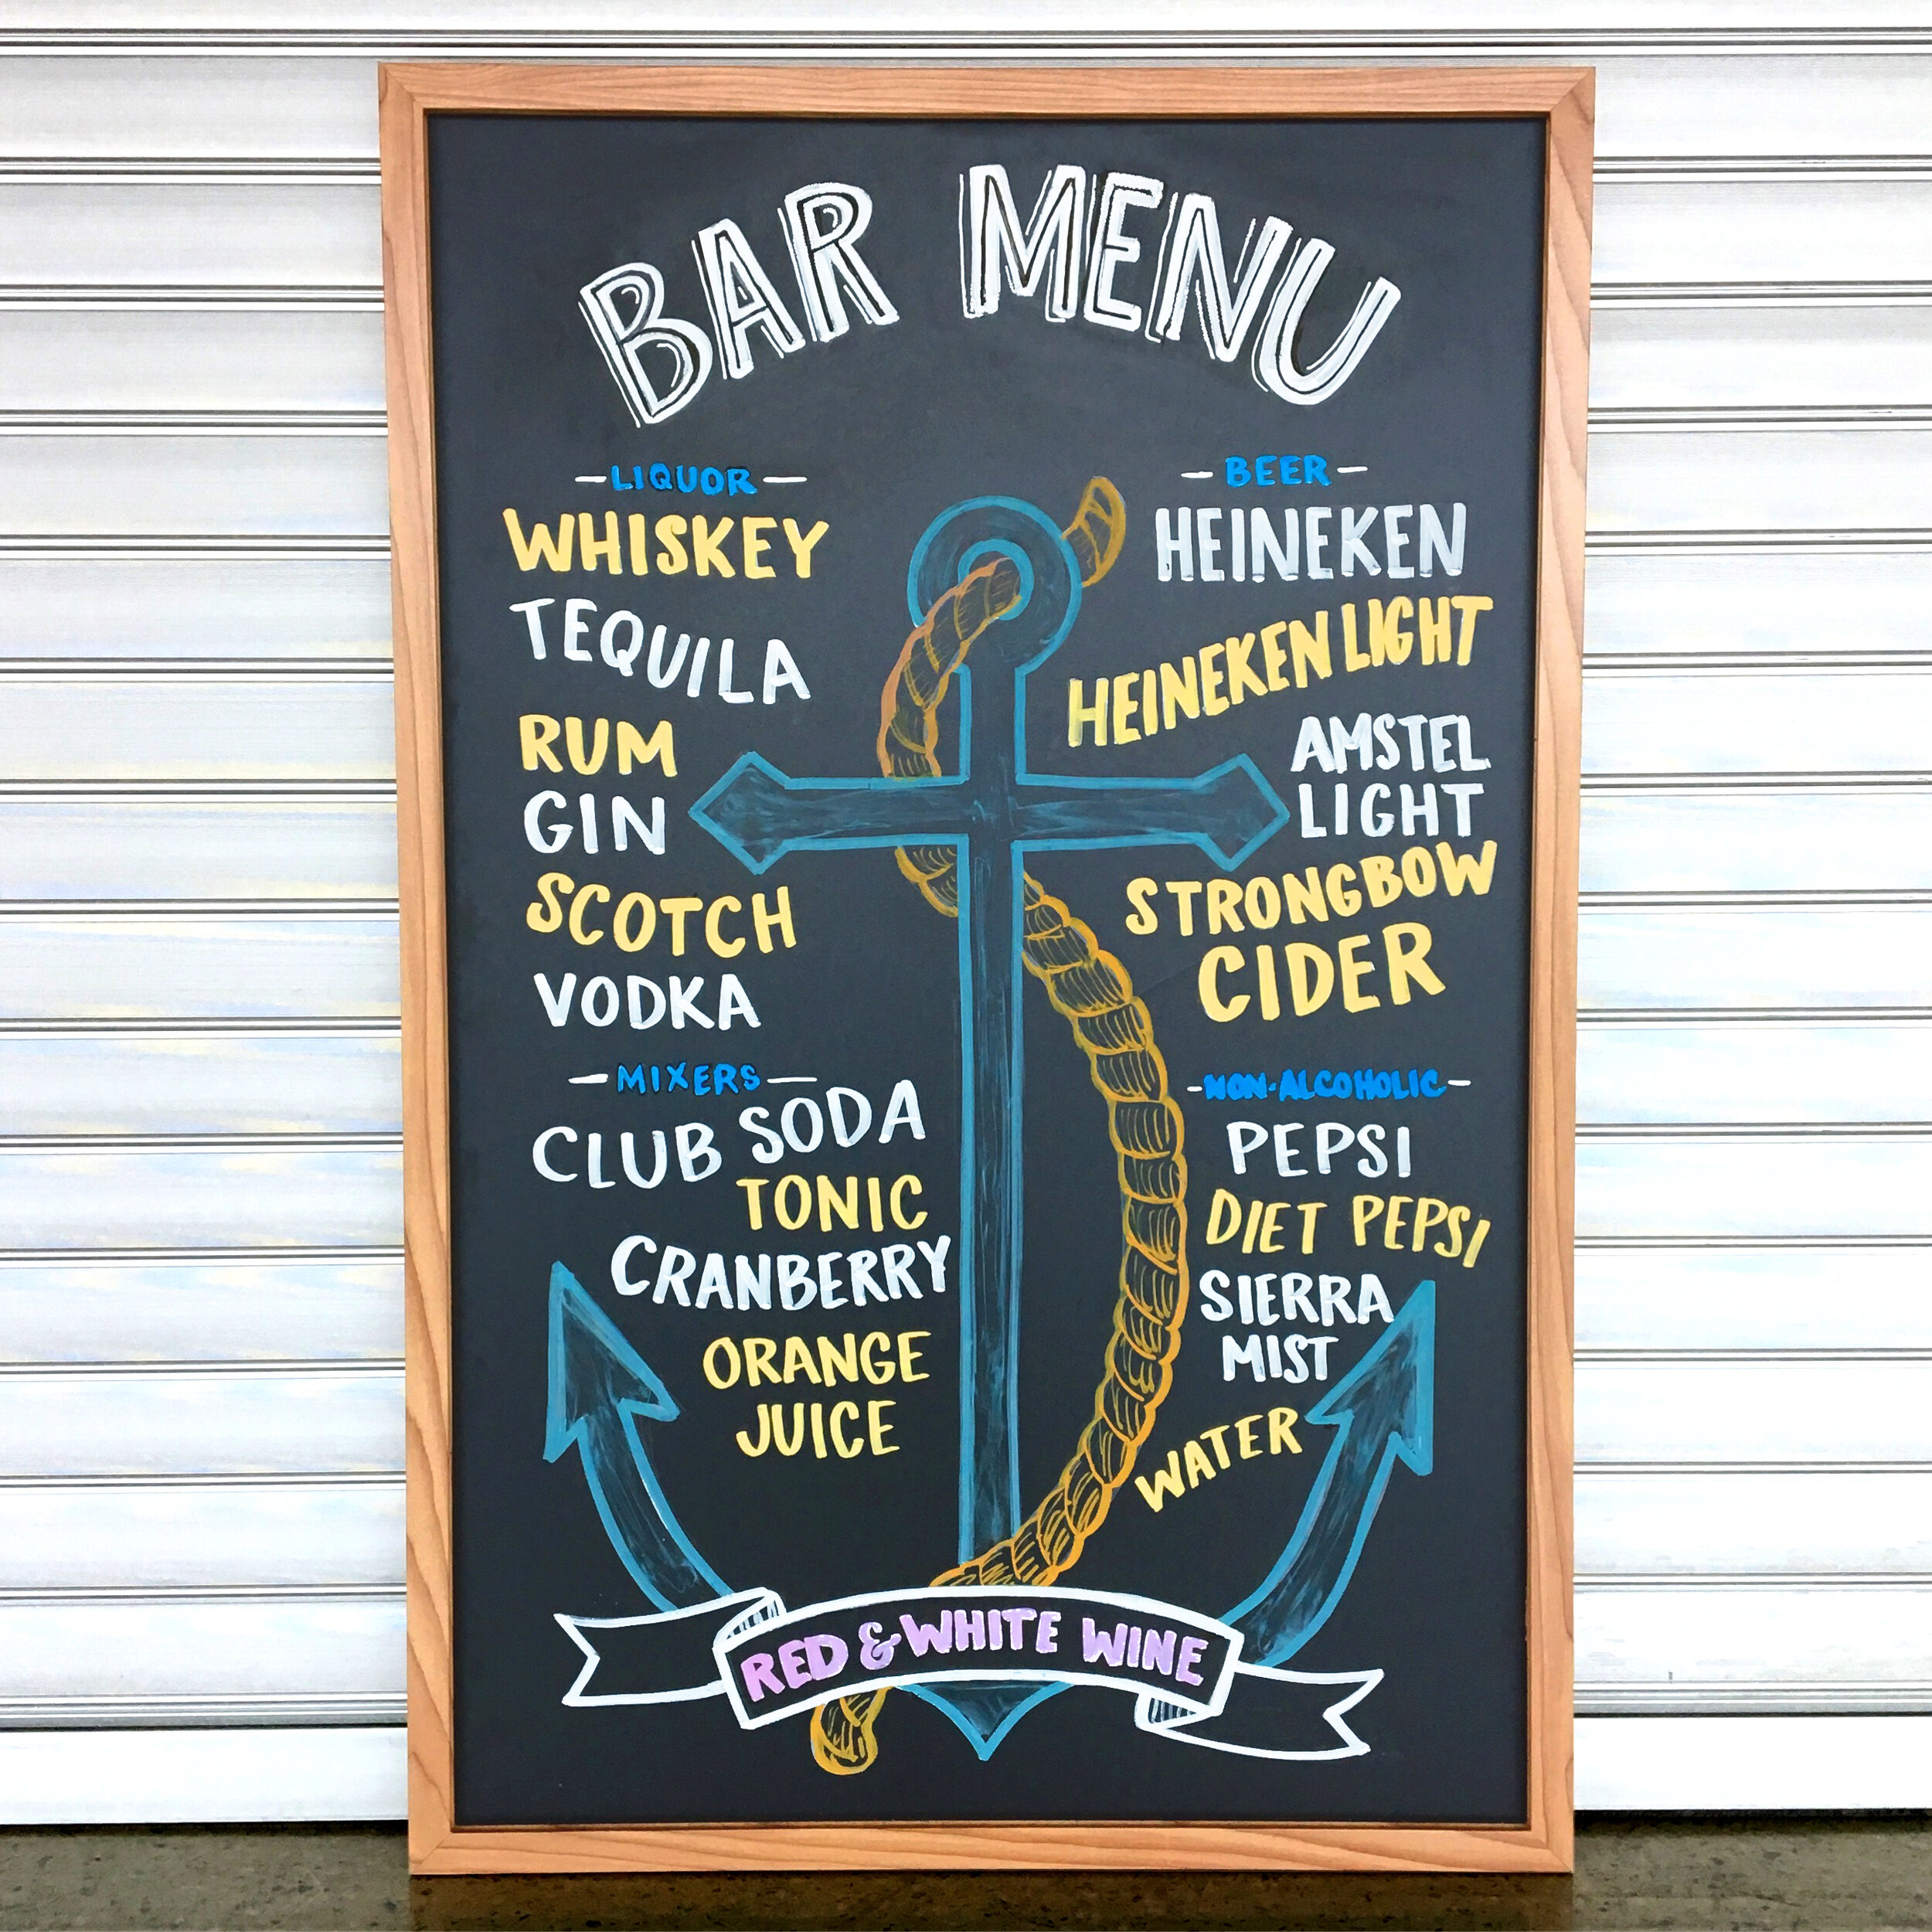 Boston Boat Show Menu.jpg